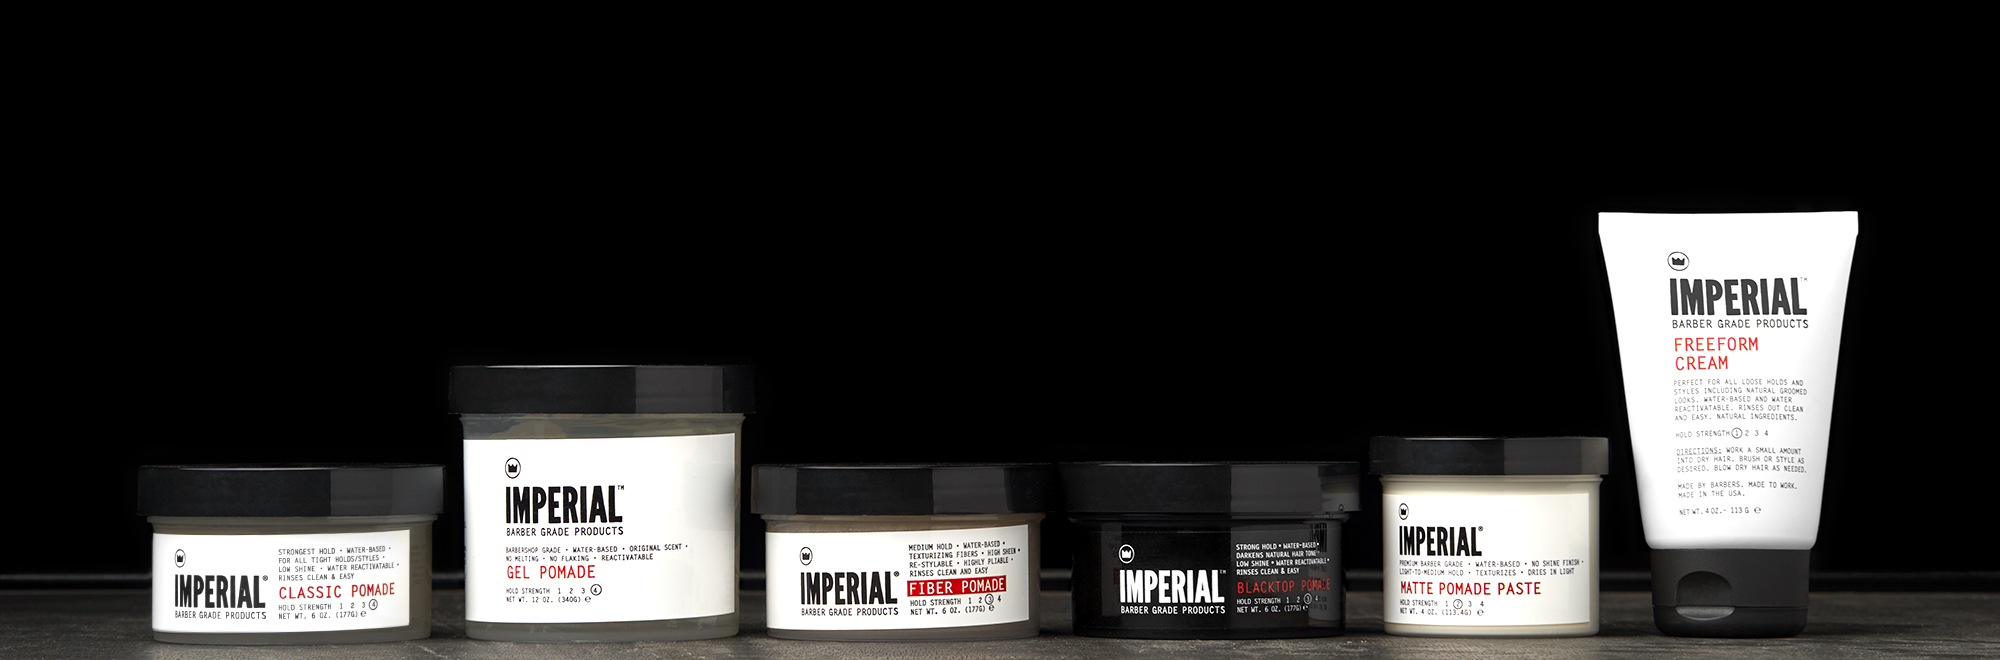 Premium Water-Based Hair Pomades | Imperial Barber Products